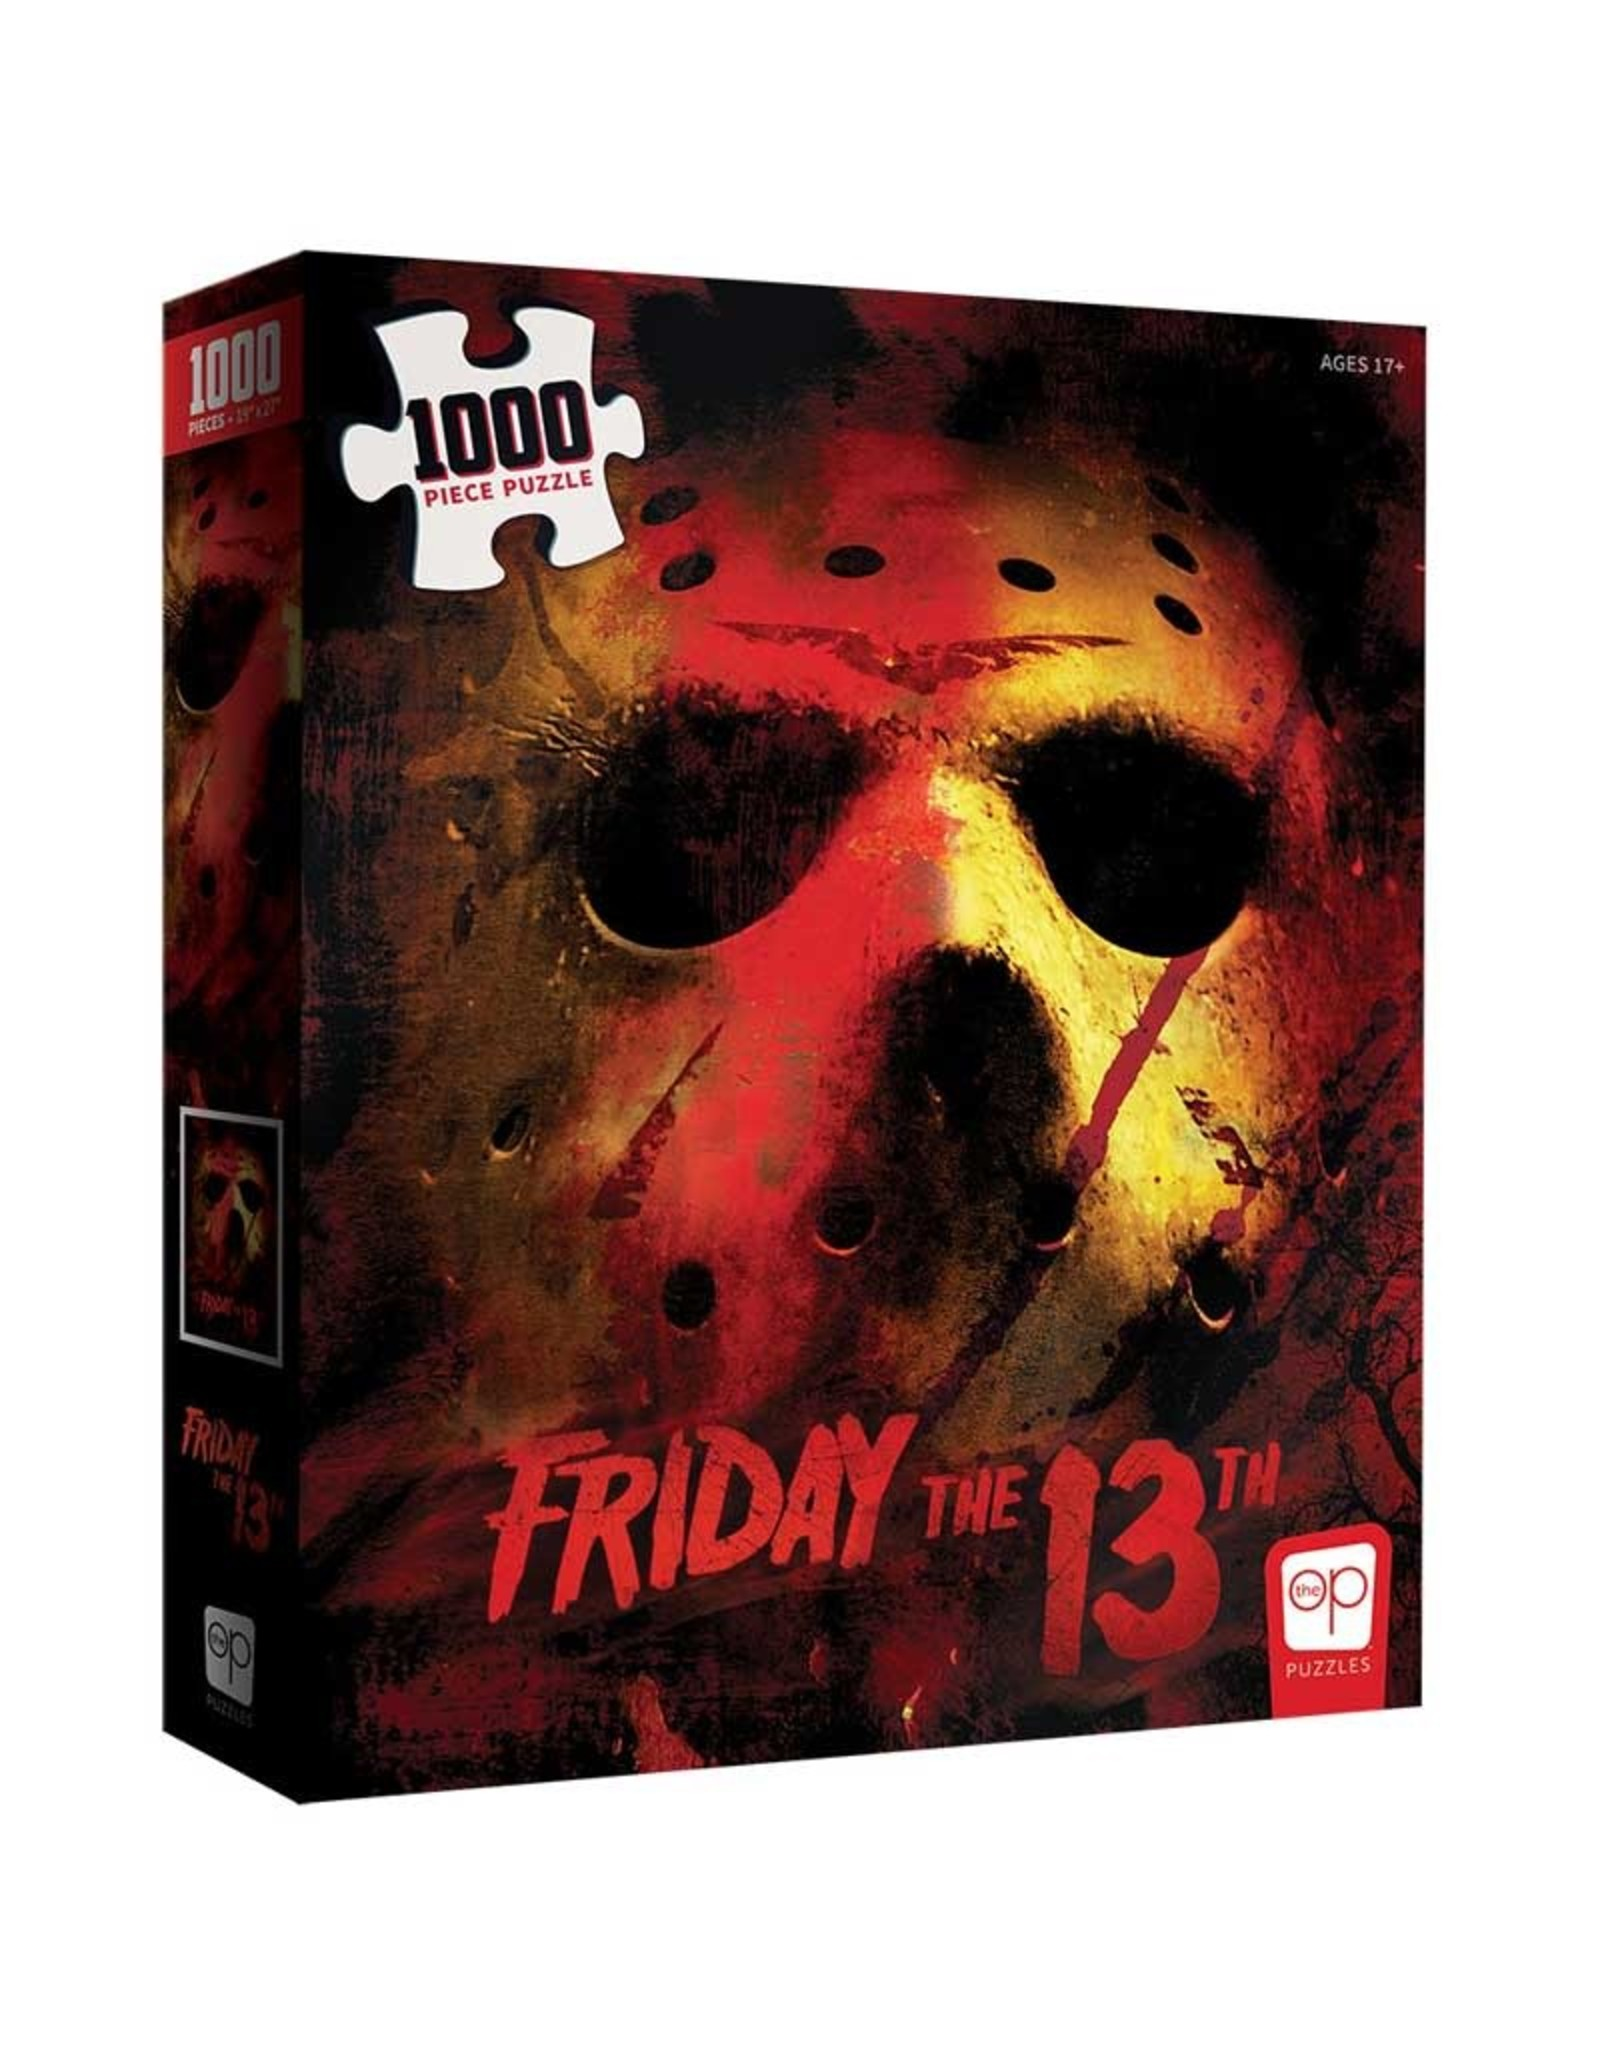 FRIDAY THE 13TH 1000 PIECE PUZZLE